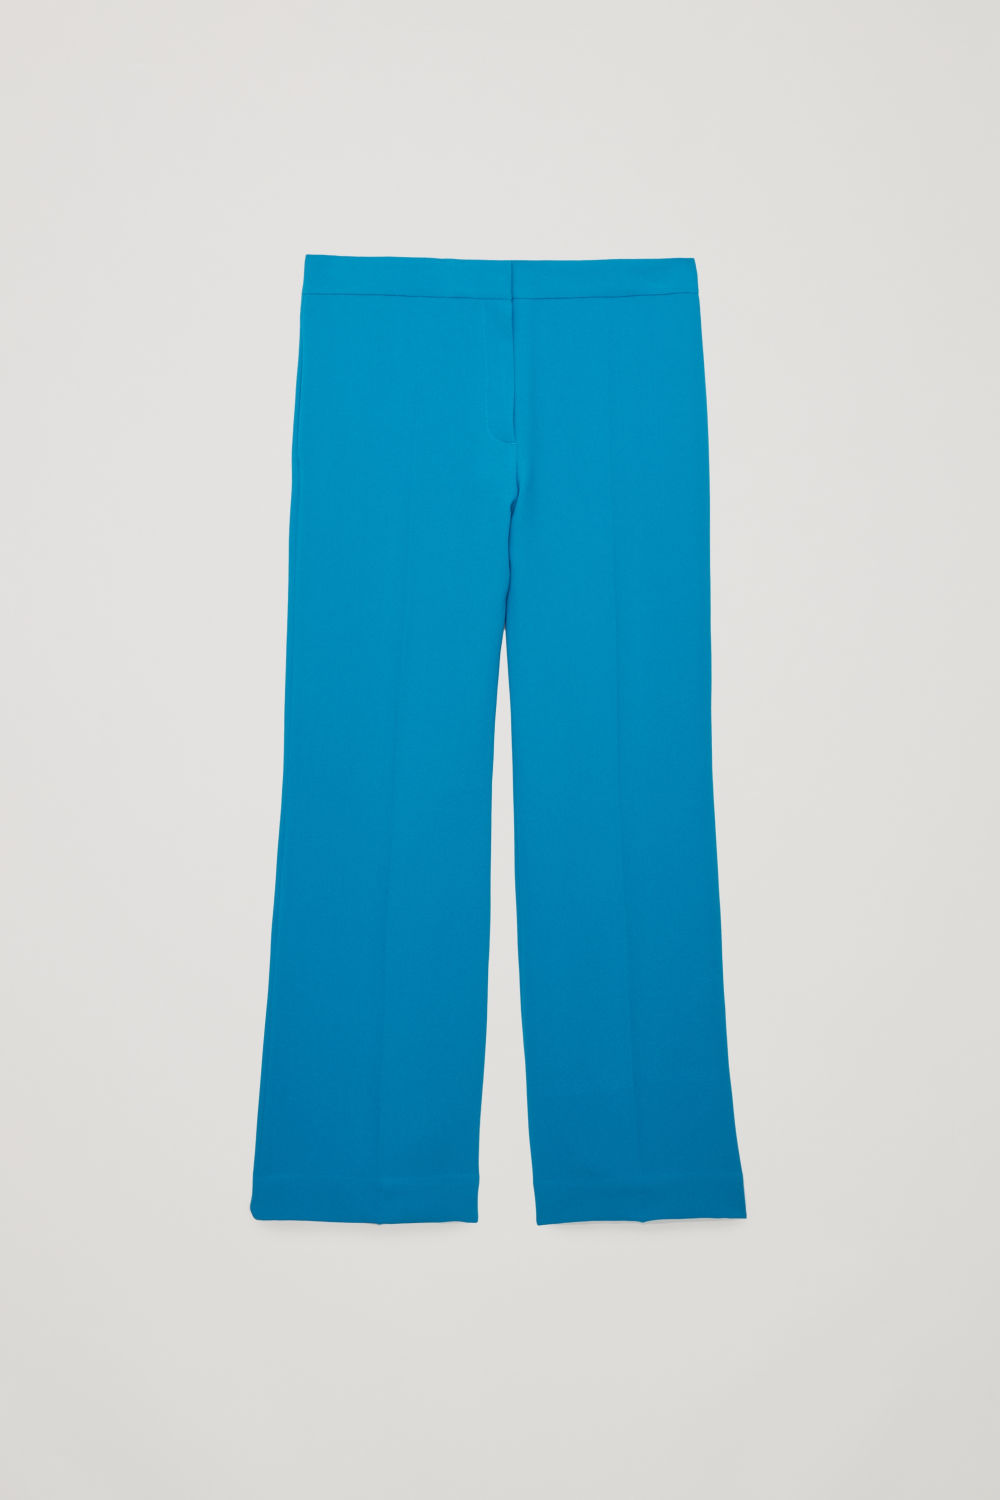 A-LINE TAILORED TROUSERS